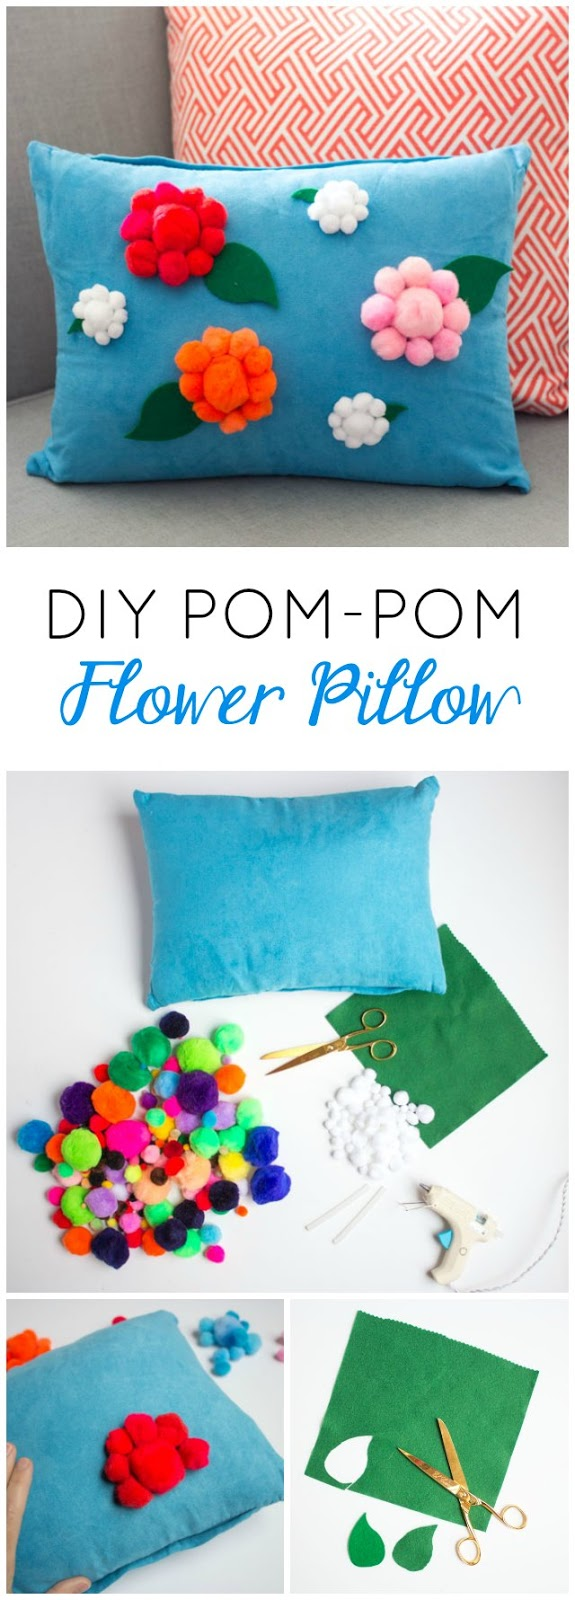 Make this pom-pom flower pillow in under an hour!